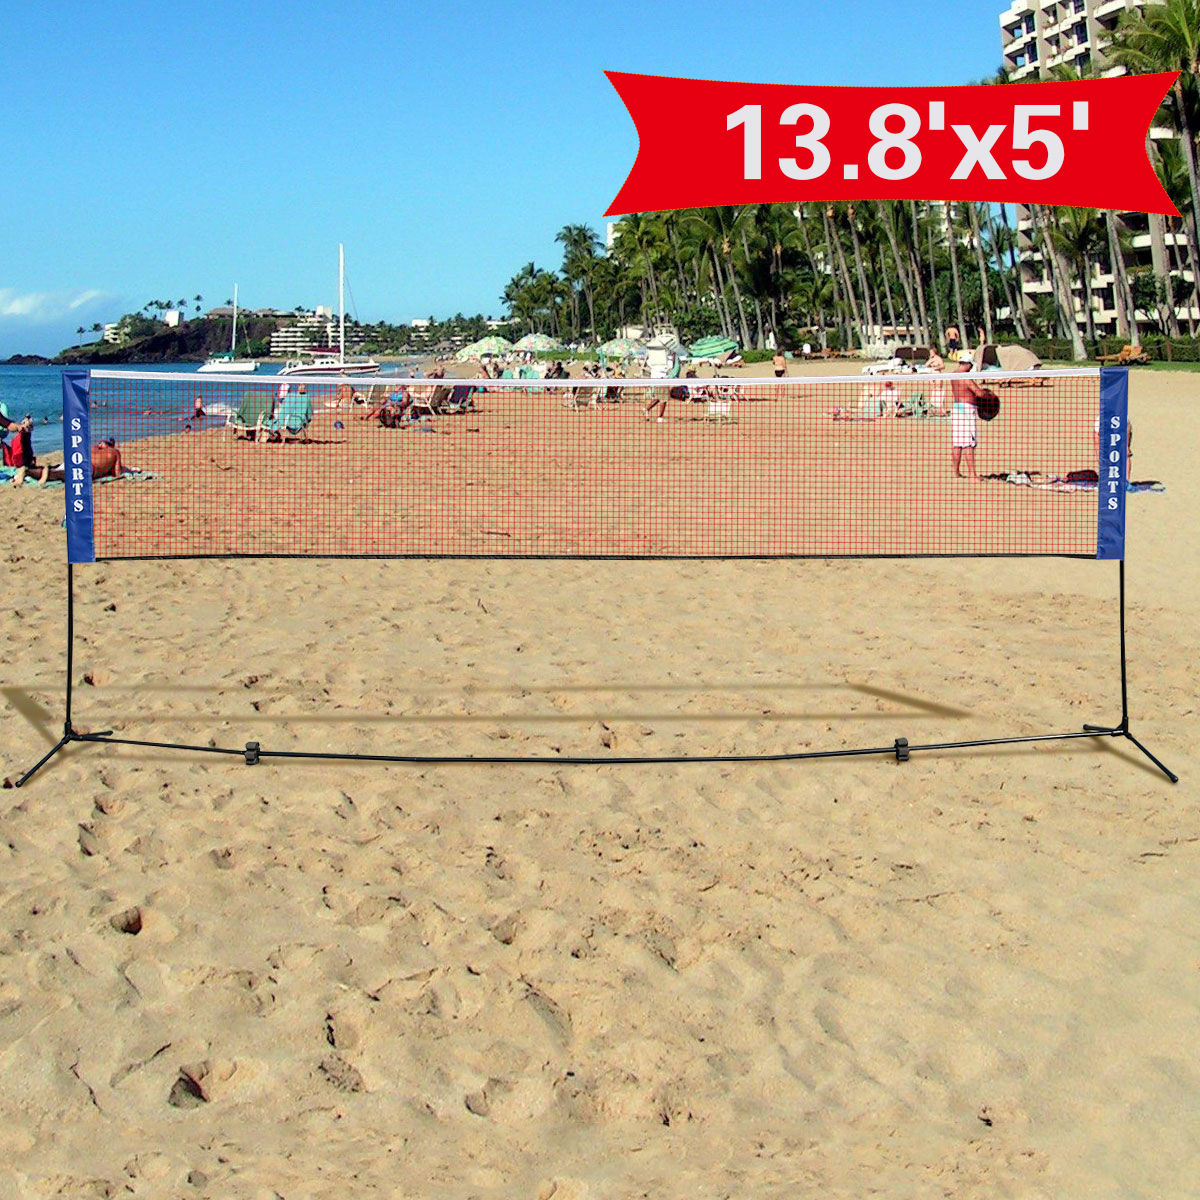 Costway Portable 13.8'x5' Badminton Beach Volleyball Tennis Training Net w/ Carrying Bag